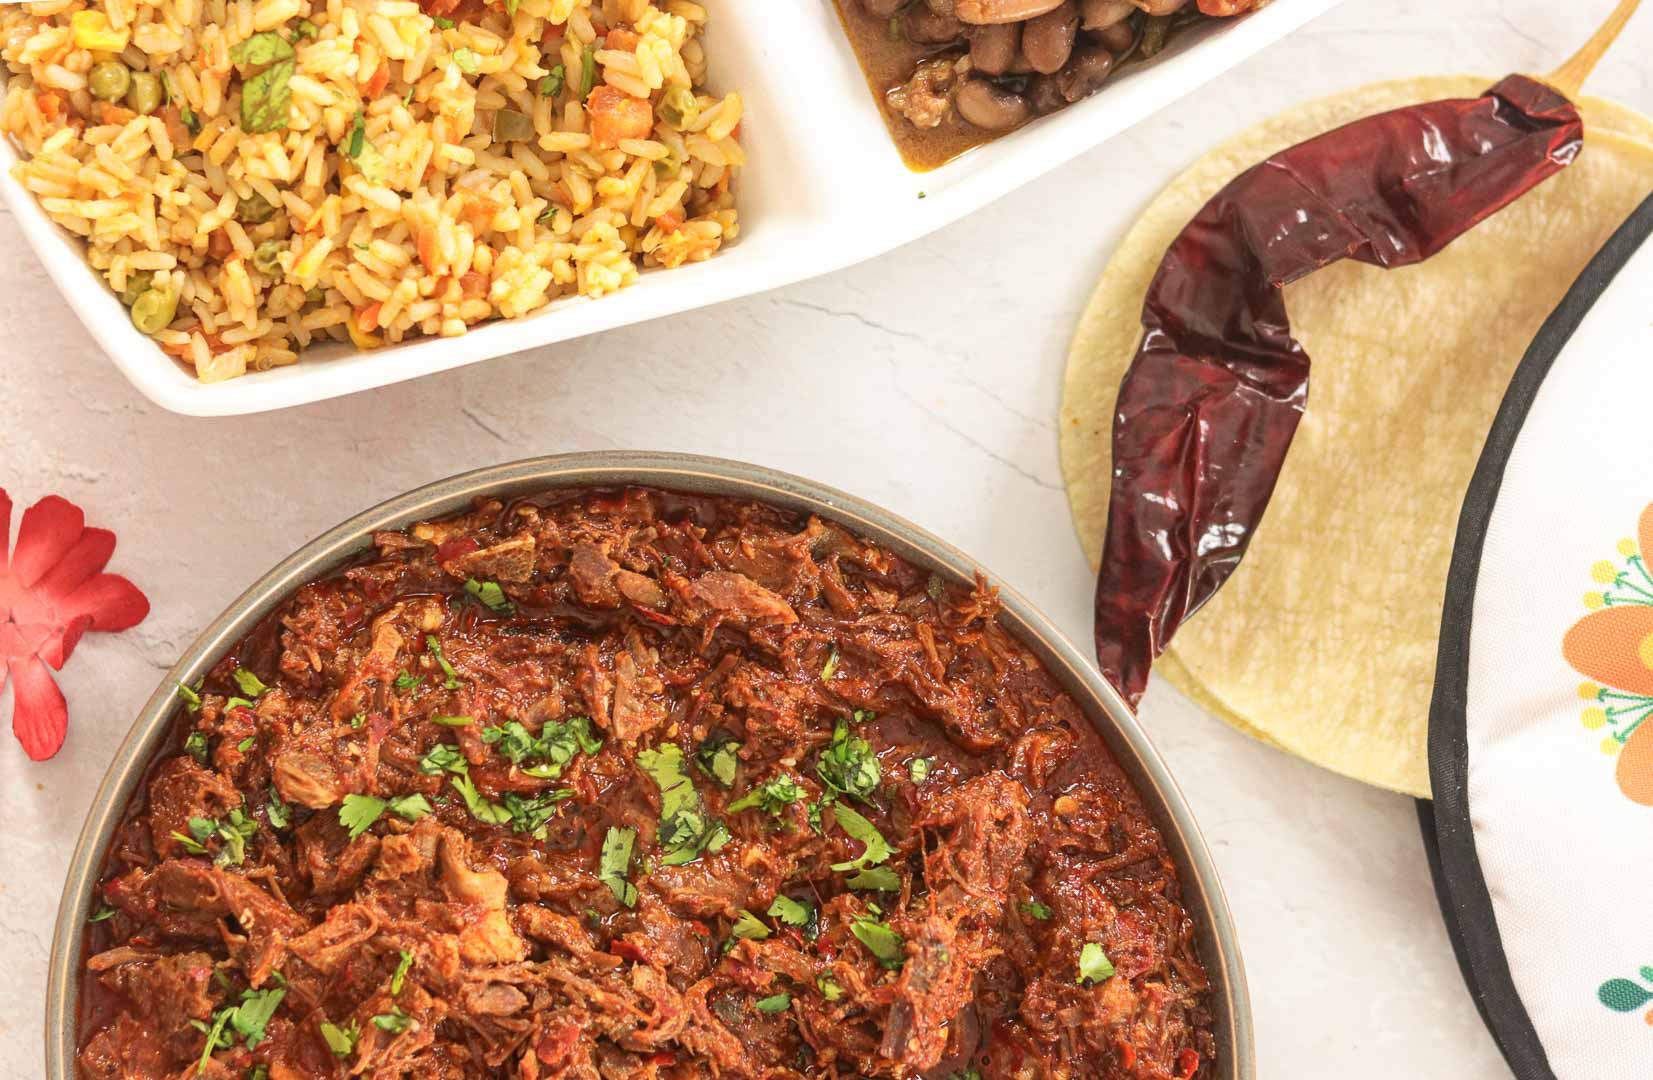 Birria with guajillo chillies and Mexican Rice in background.